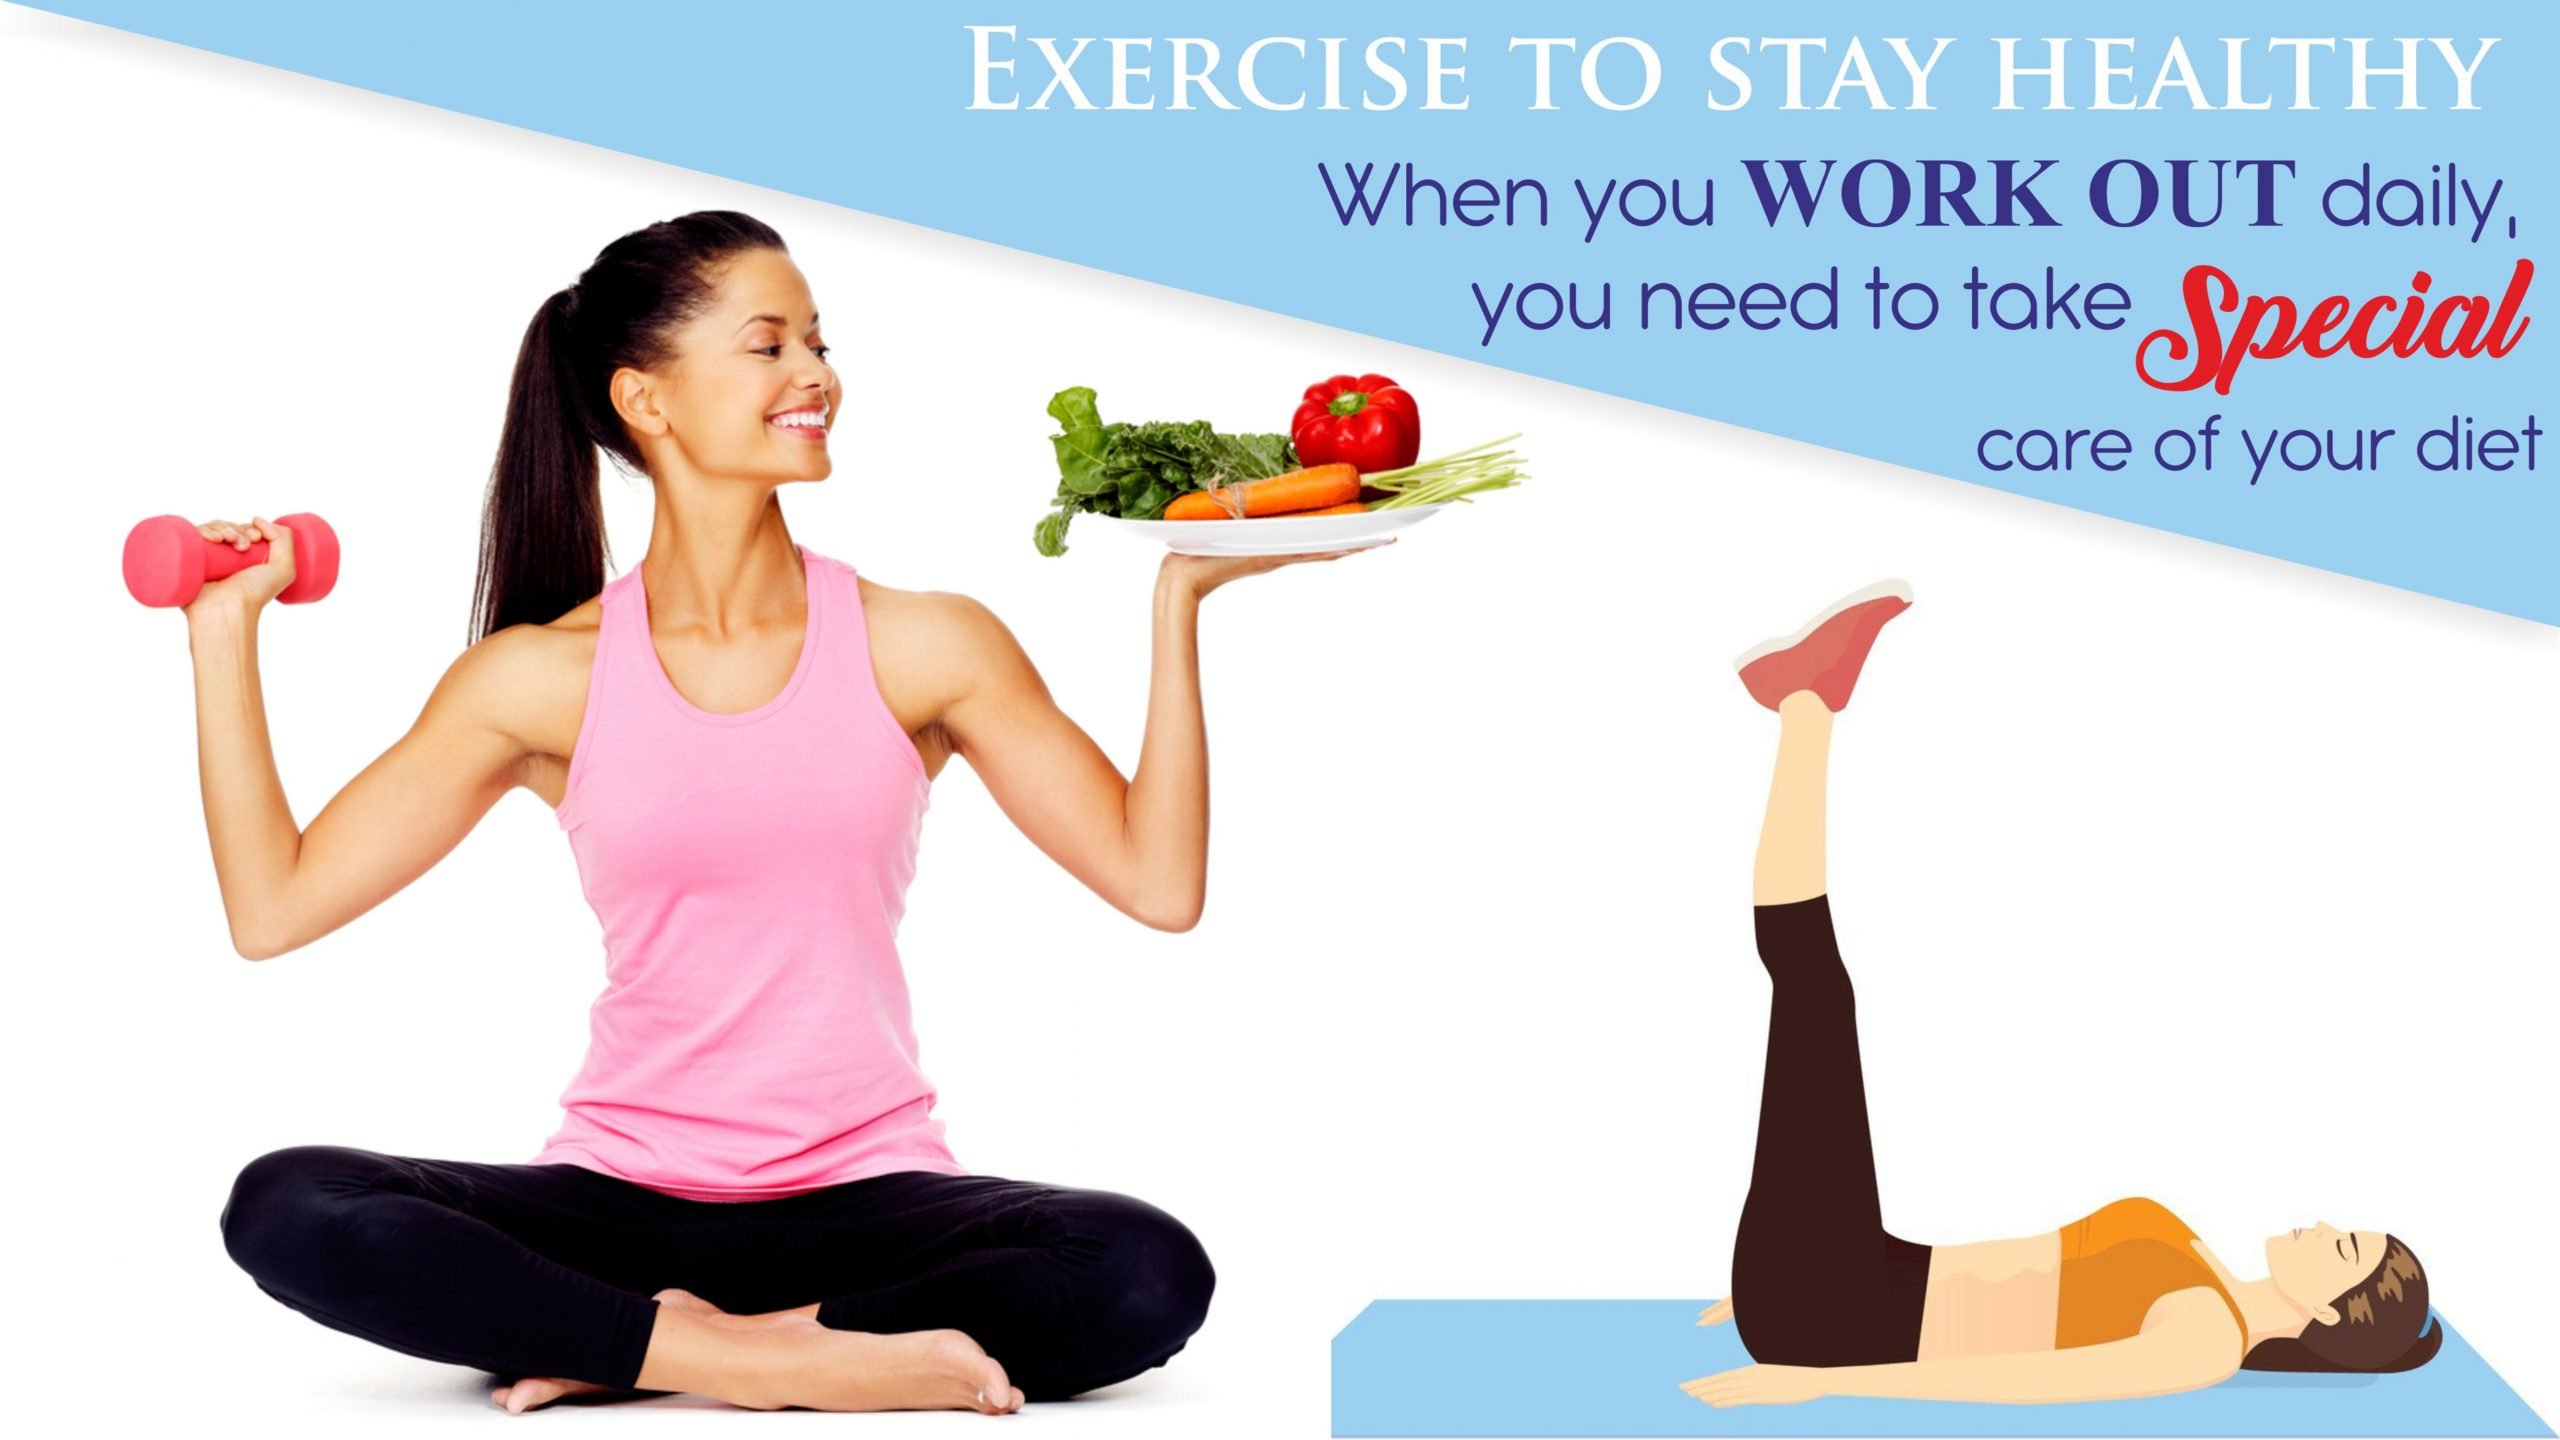 Exercise to stay healthy